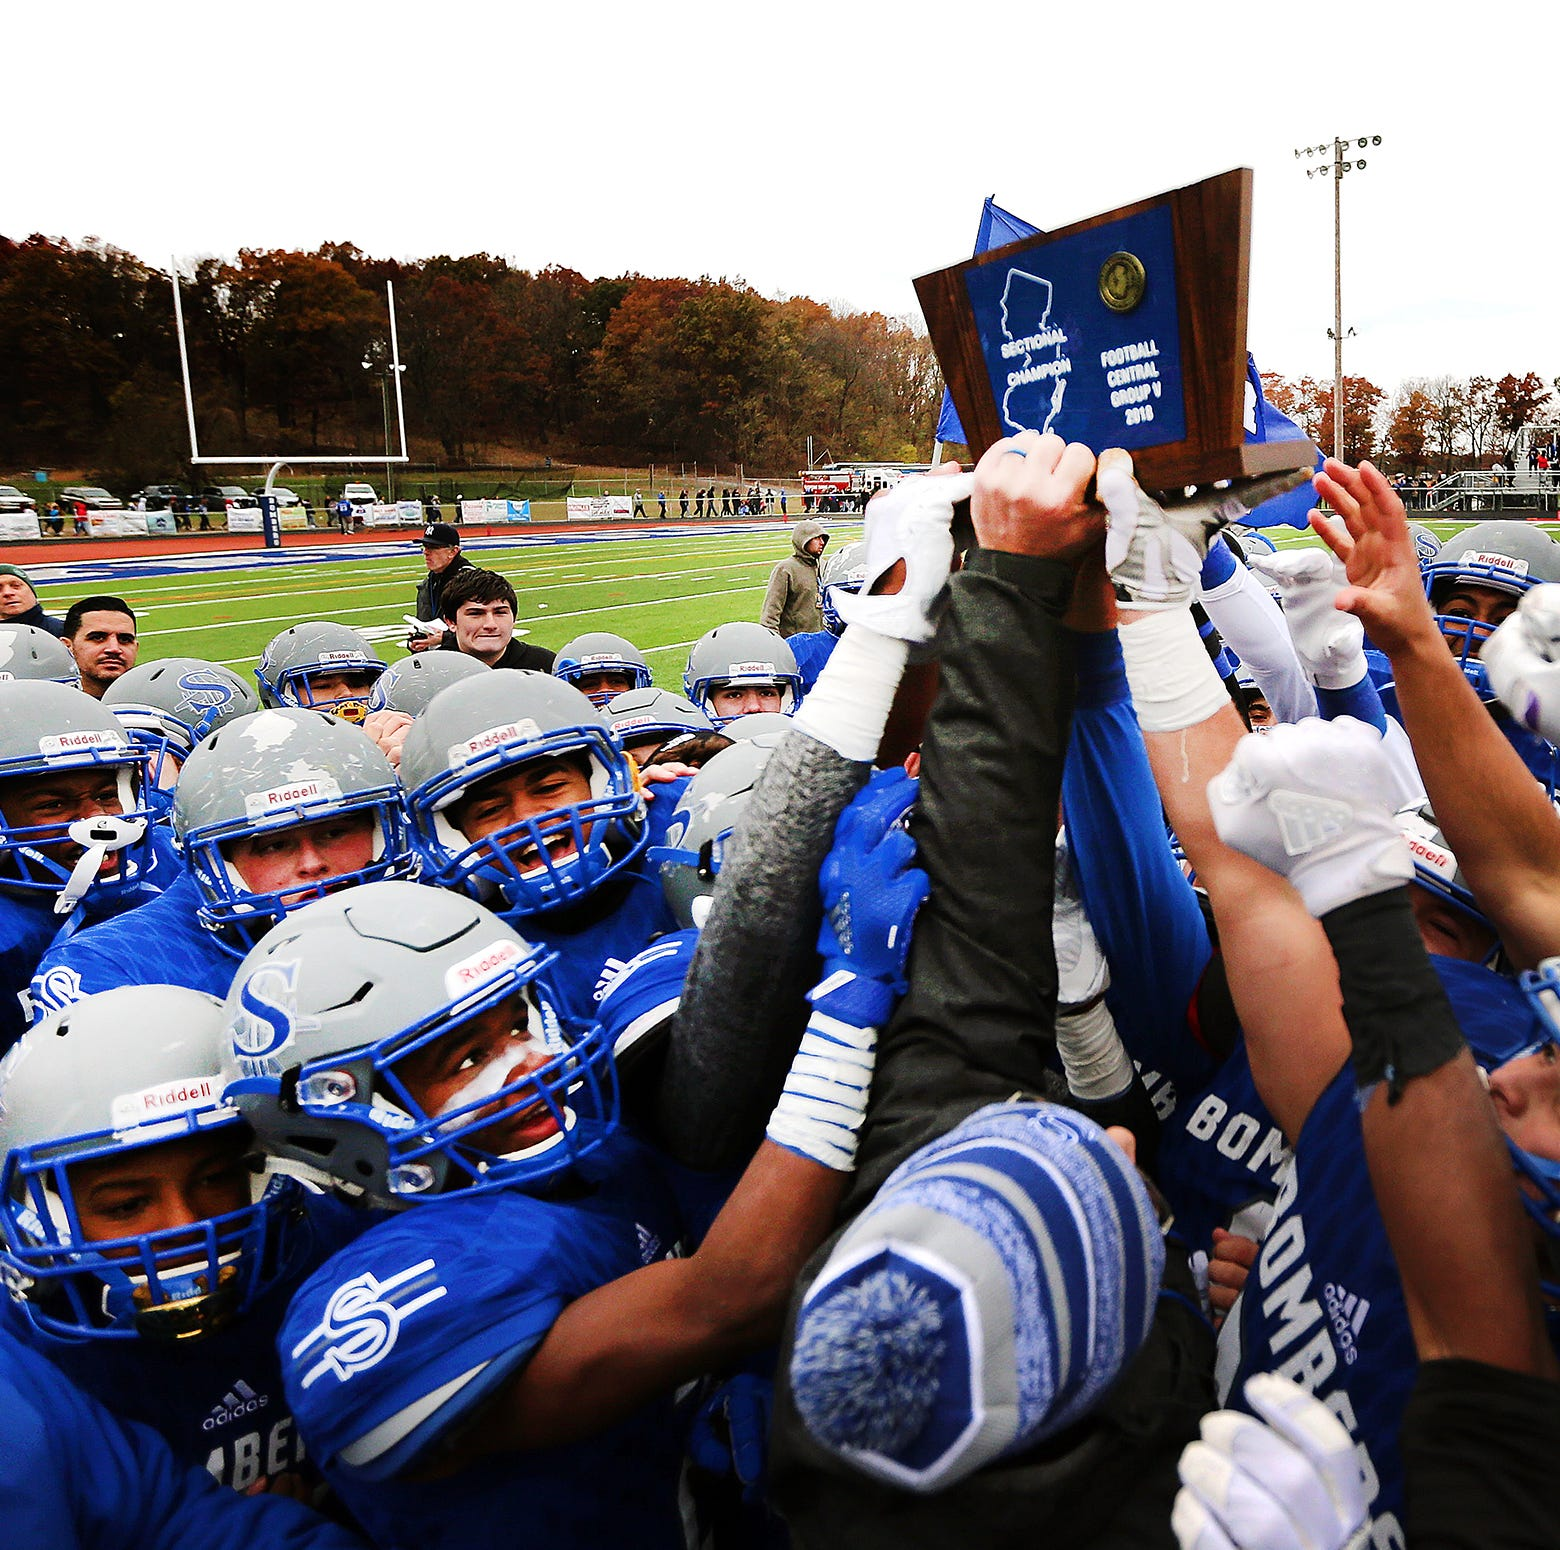 NJ football: Defense lifts Sayreville to win over North Brunswick for sectional title